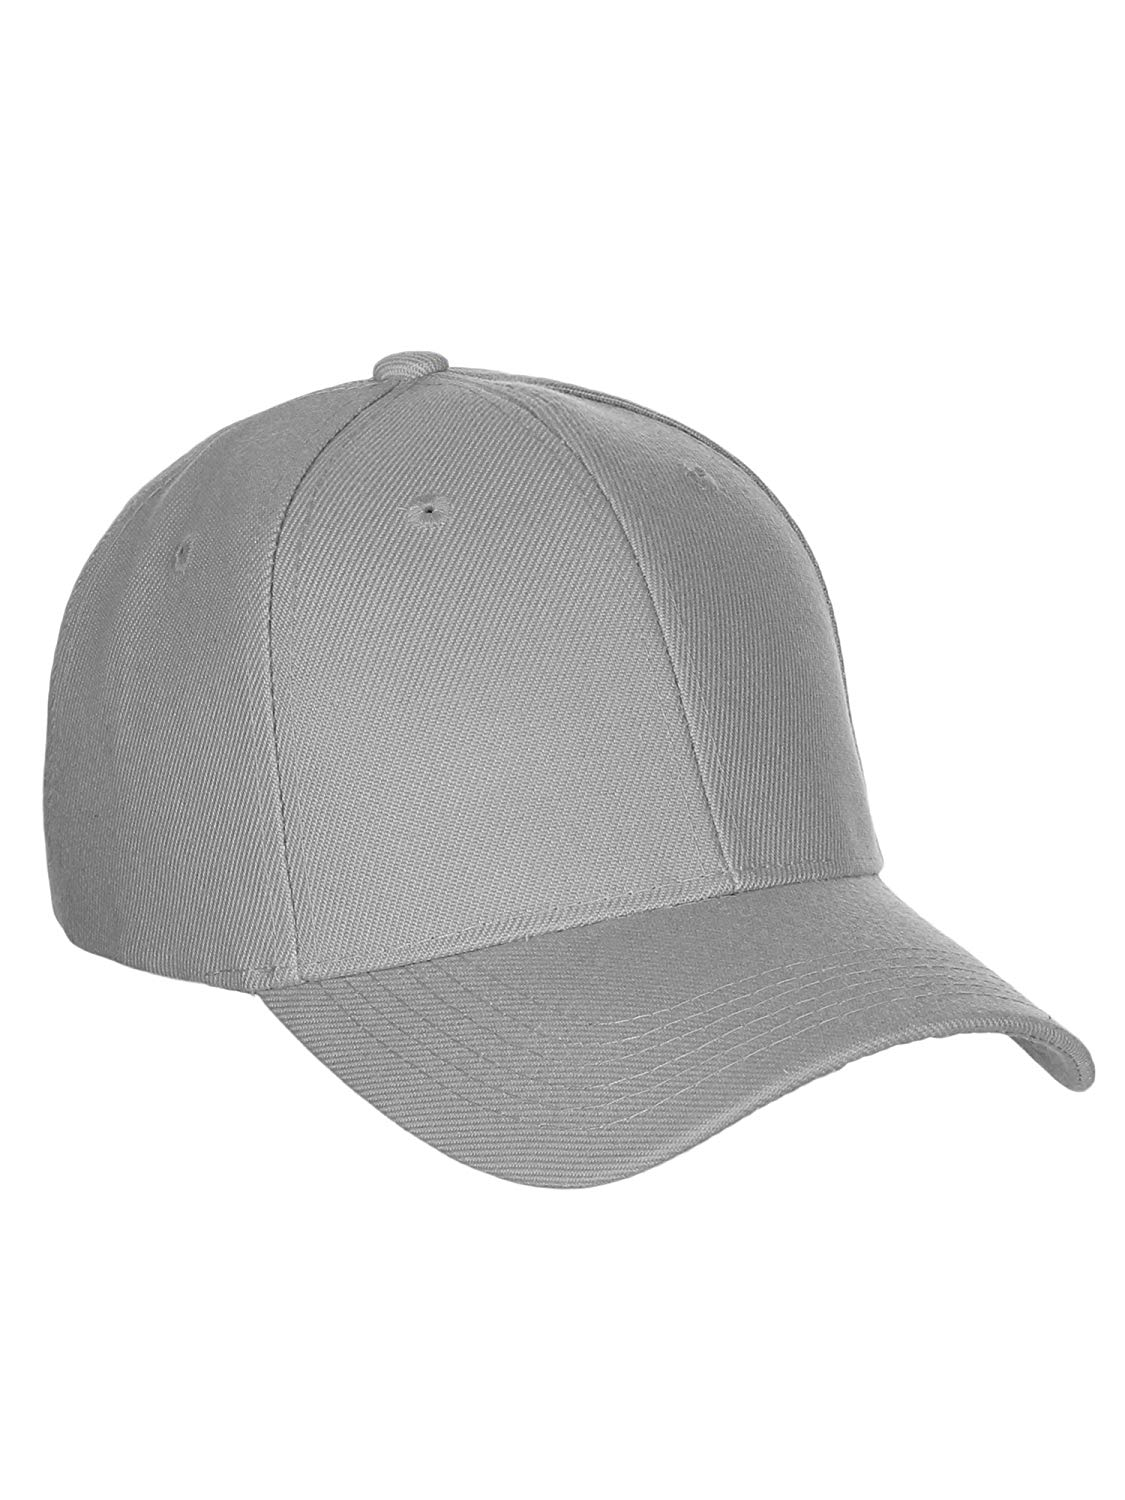 15bac48e84ffc Get Quotations · Diversity & Inclusion D&I Men's Basic Baseball Cap Velcro  Adjustable Curved Visor Hat Diversity & Inclusion D&I Men's Basic ...